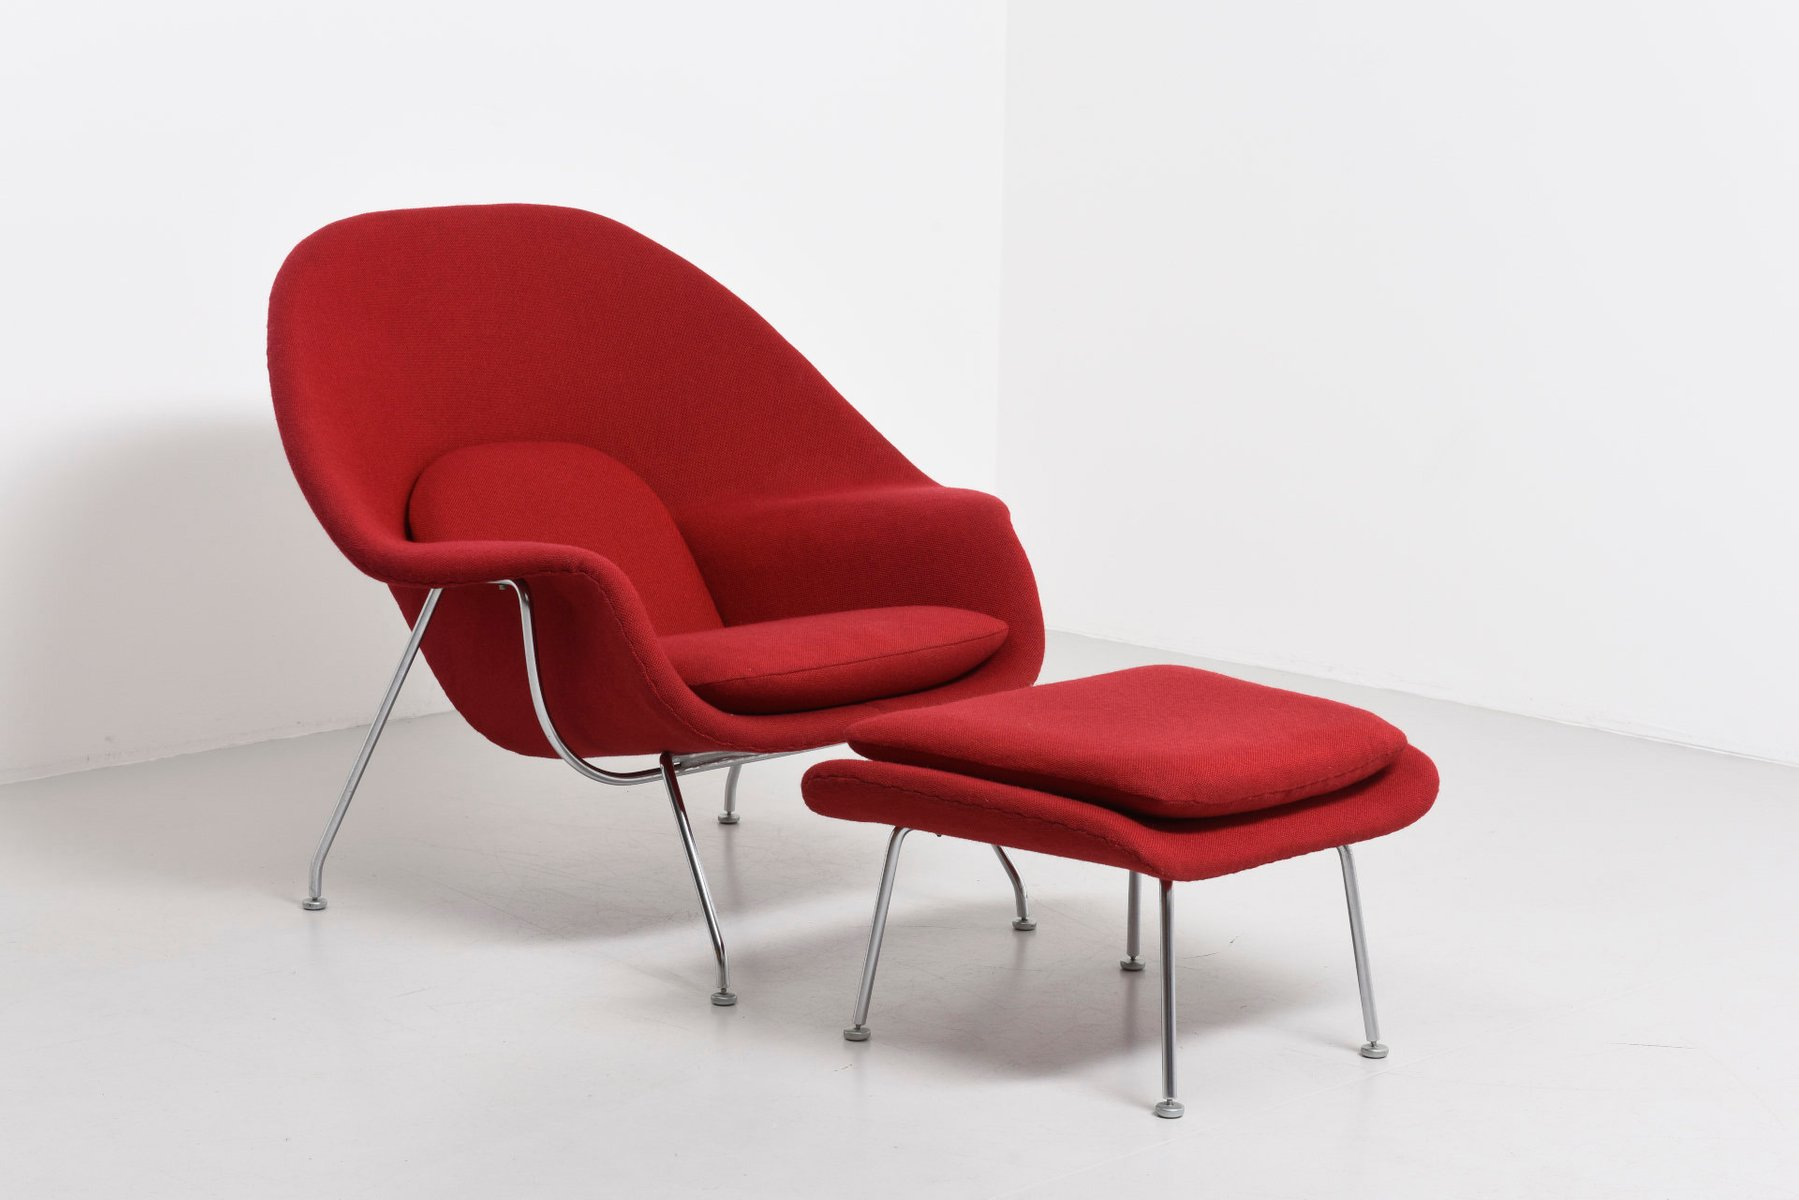 Vintage Womb Chair with Ottoman by Eero Saarinen for Knoll for